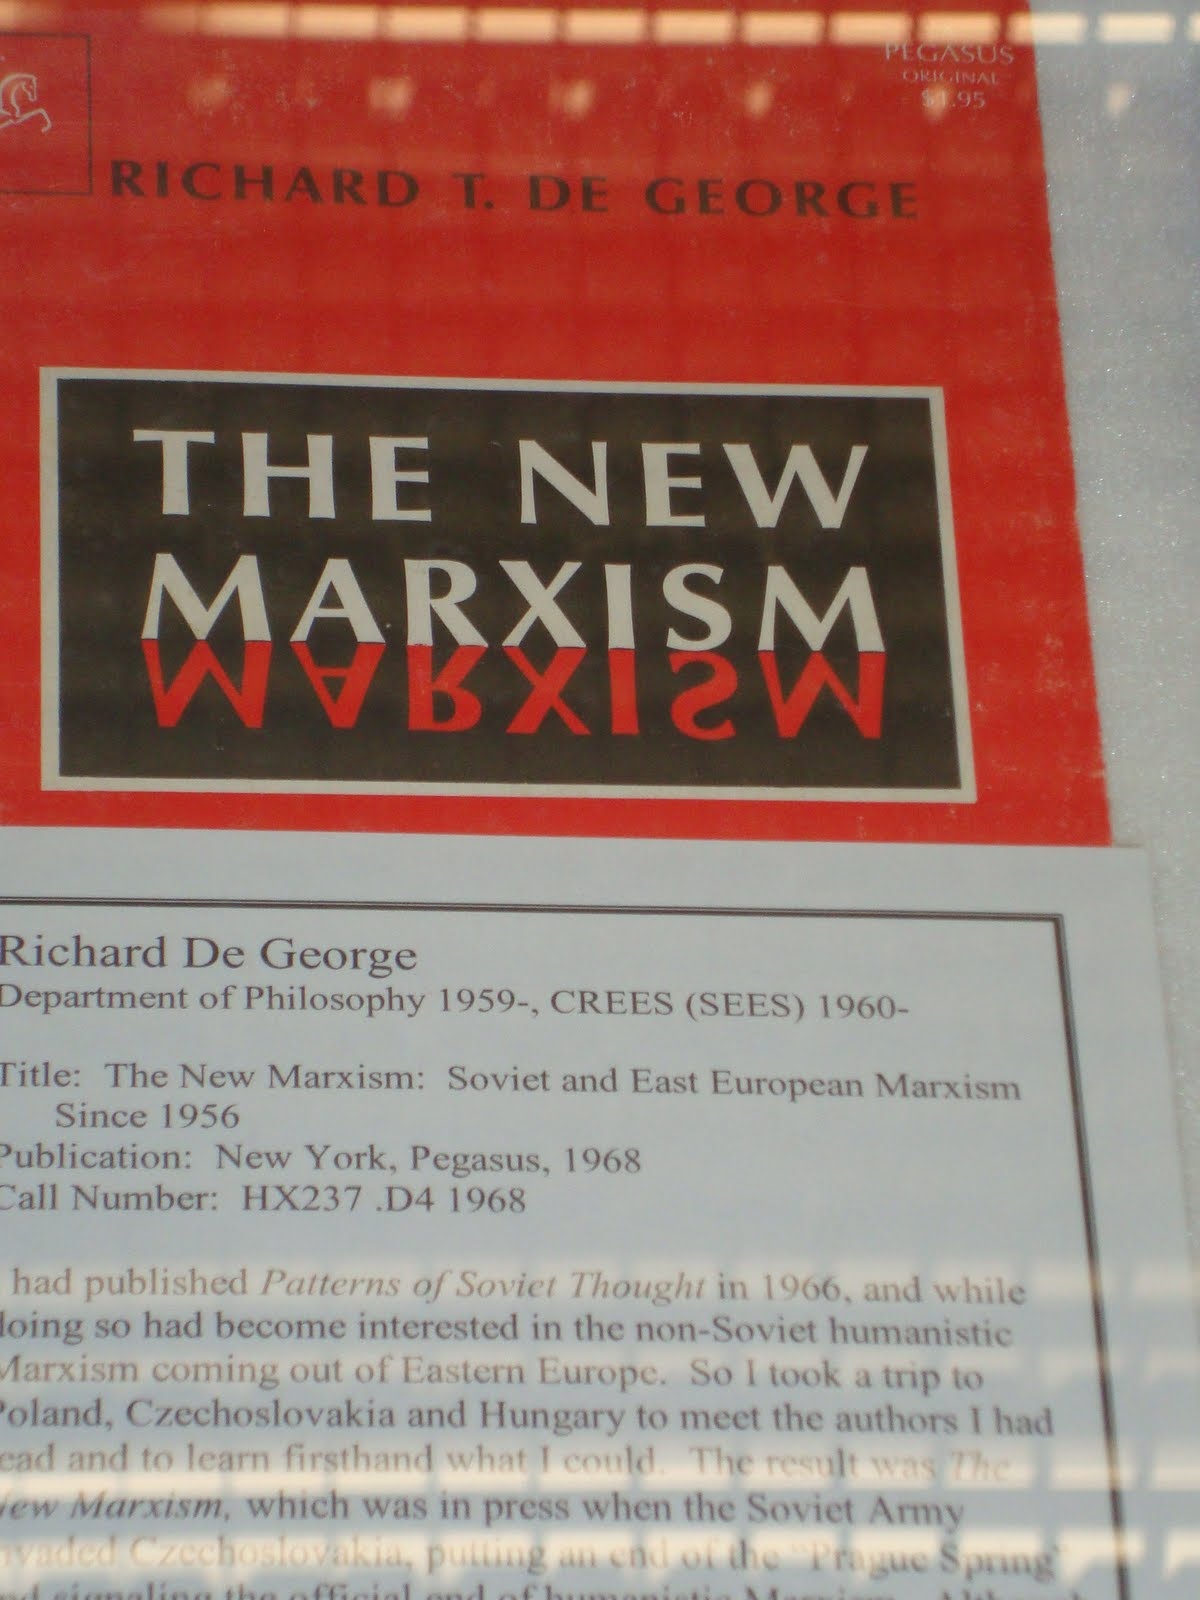 Book: The New Marxism